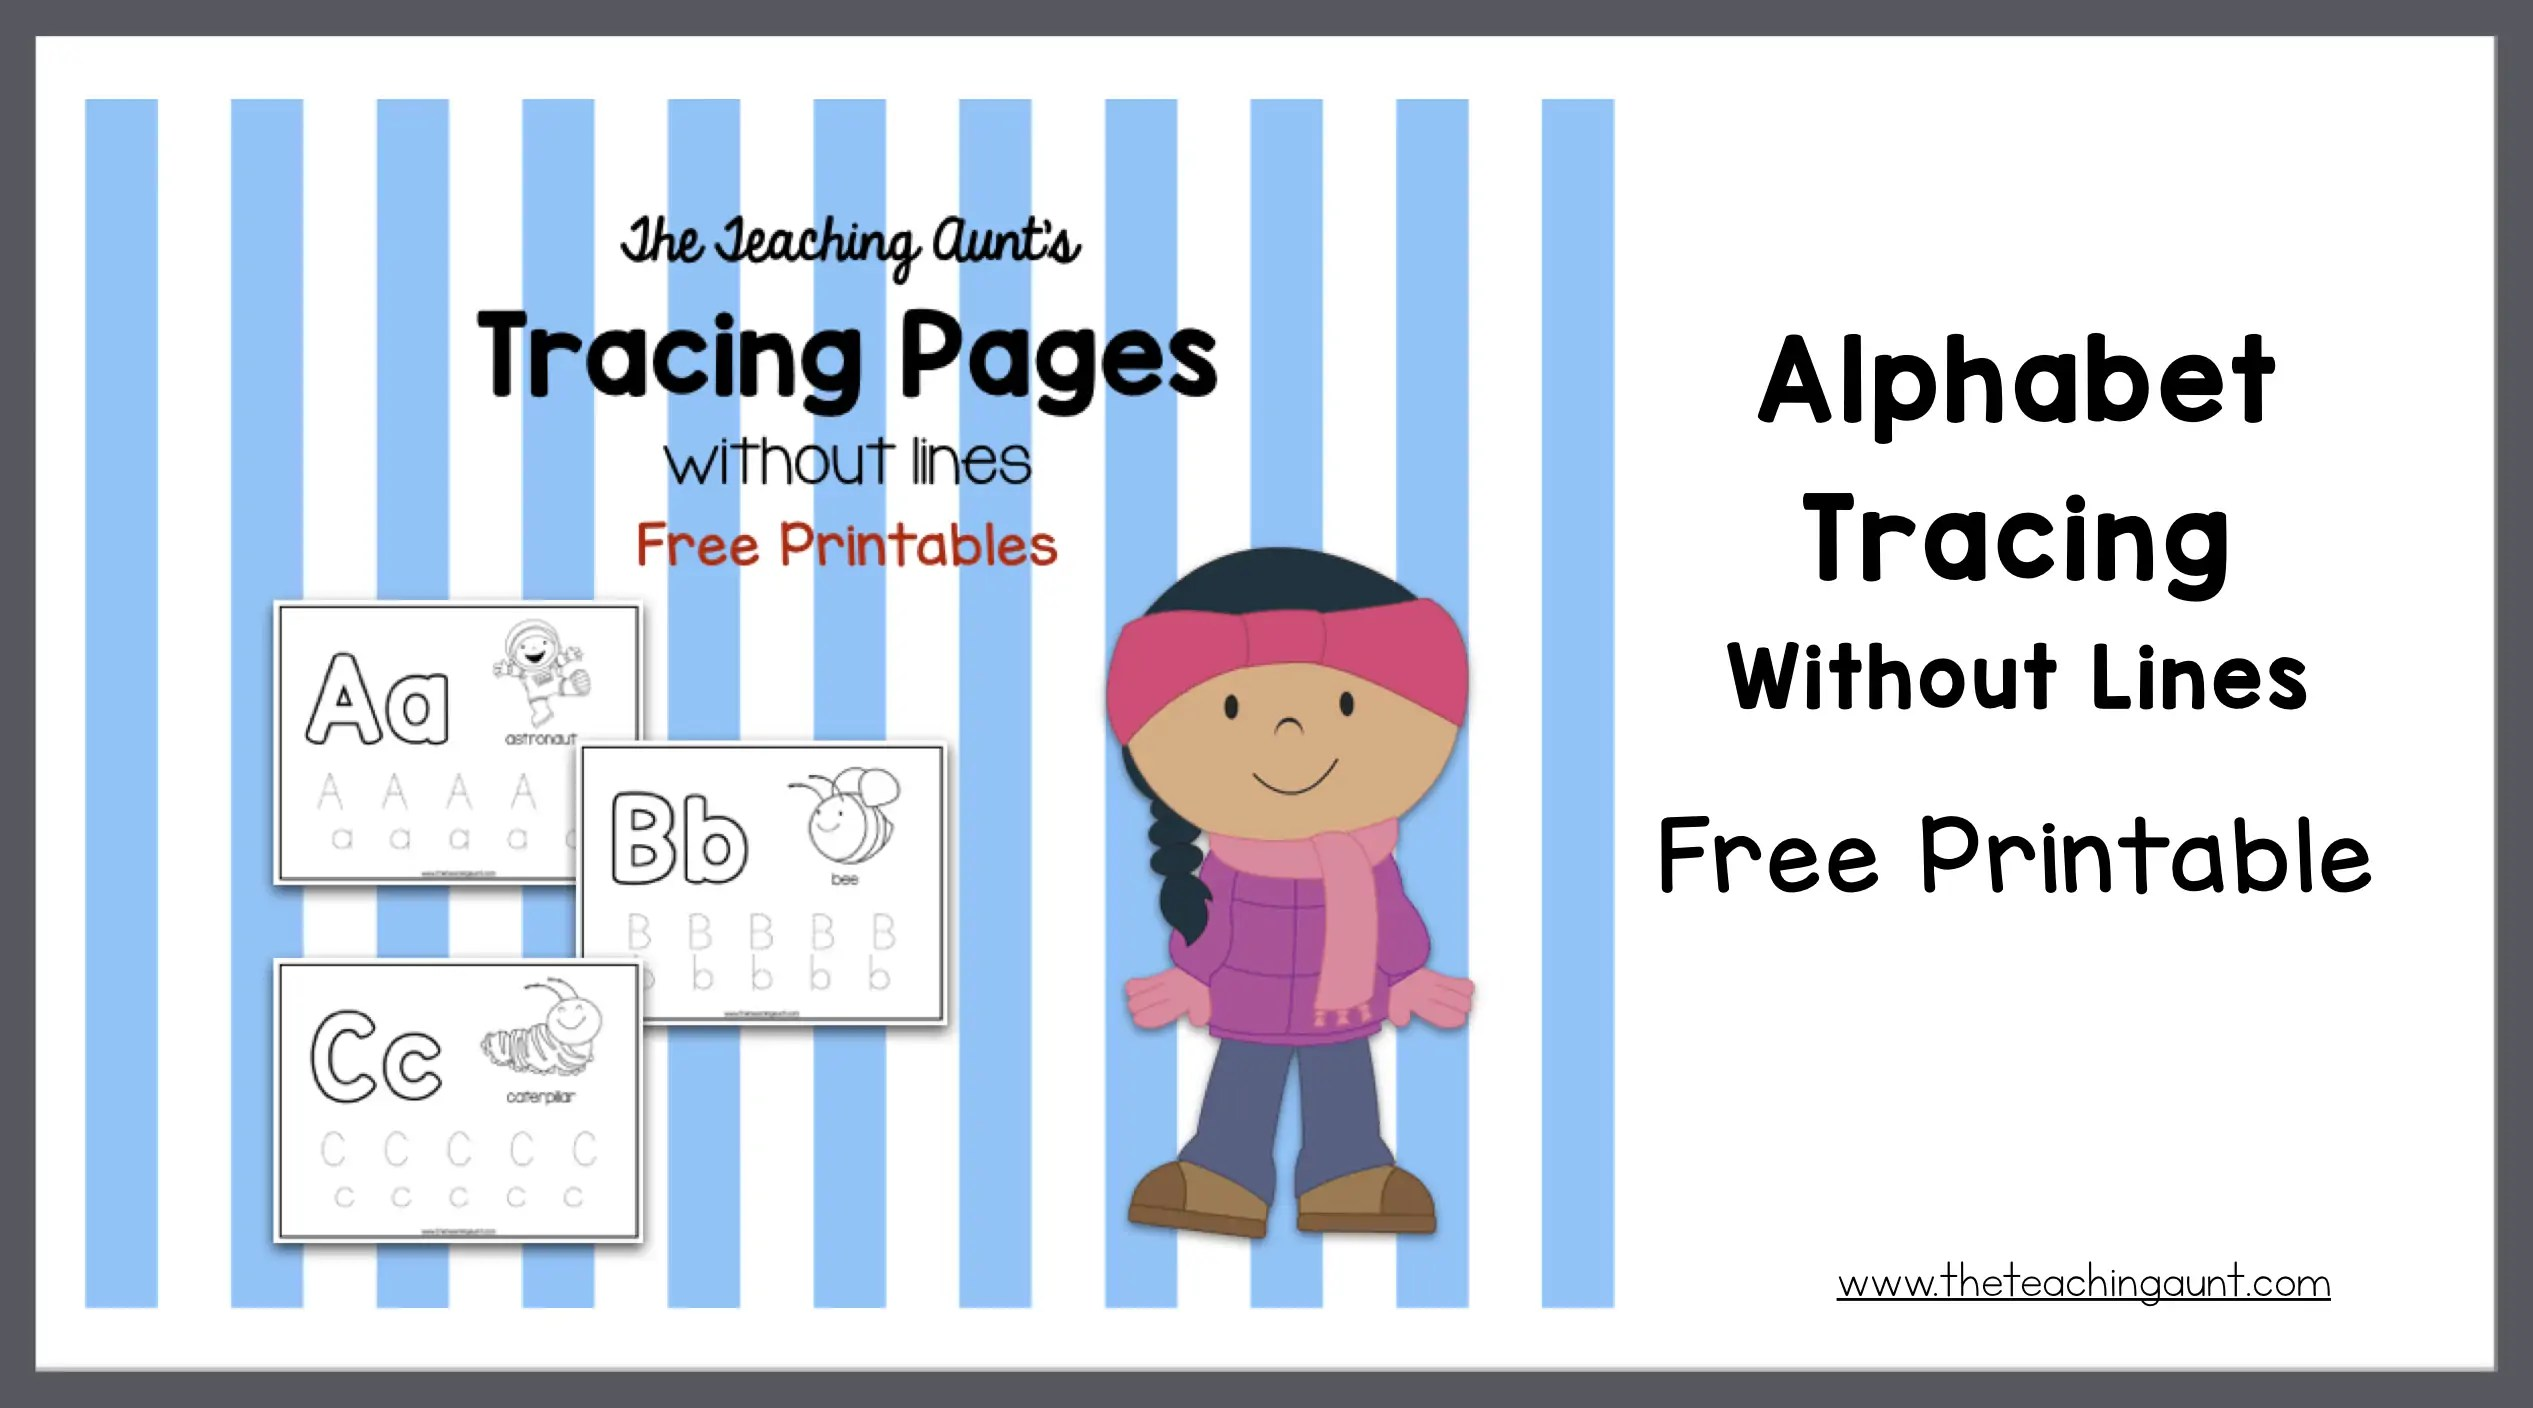 picture about Alphabet Line Printable identified as Alphabet Tracing Without having Strains Totally free Printable - The Instruction